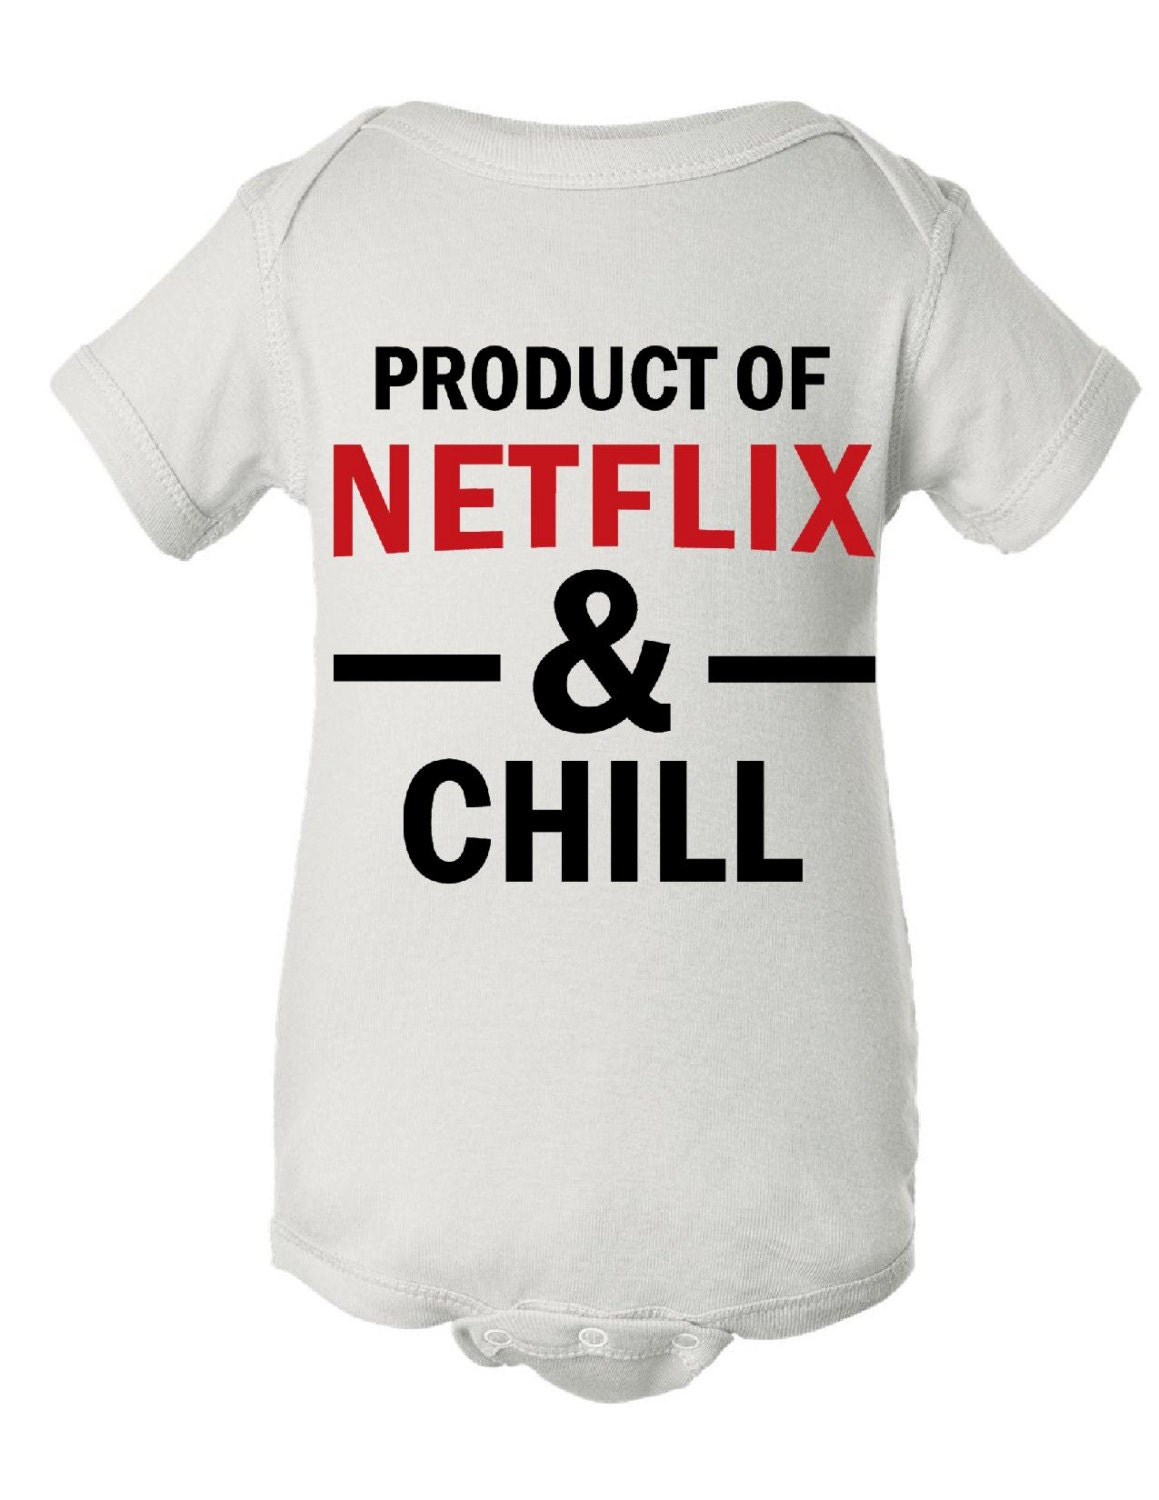 Product of netflix and chill infant onesie and t shirt for Baby onesie t shirt